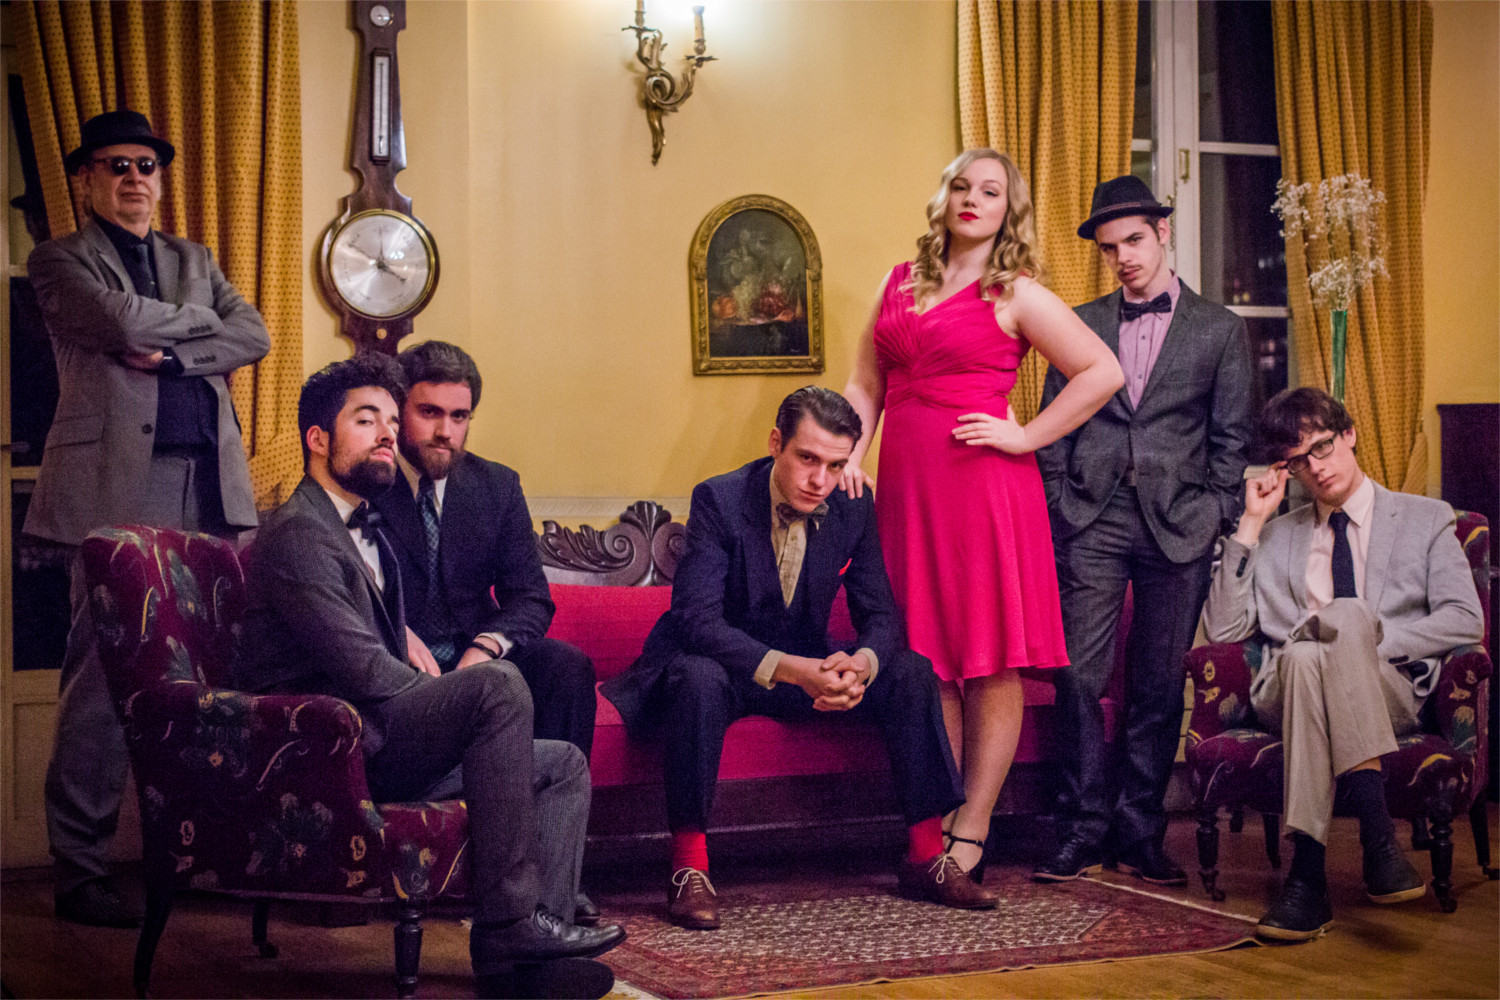 Le Vintage Swing Orchestra France